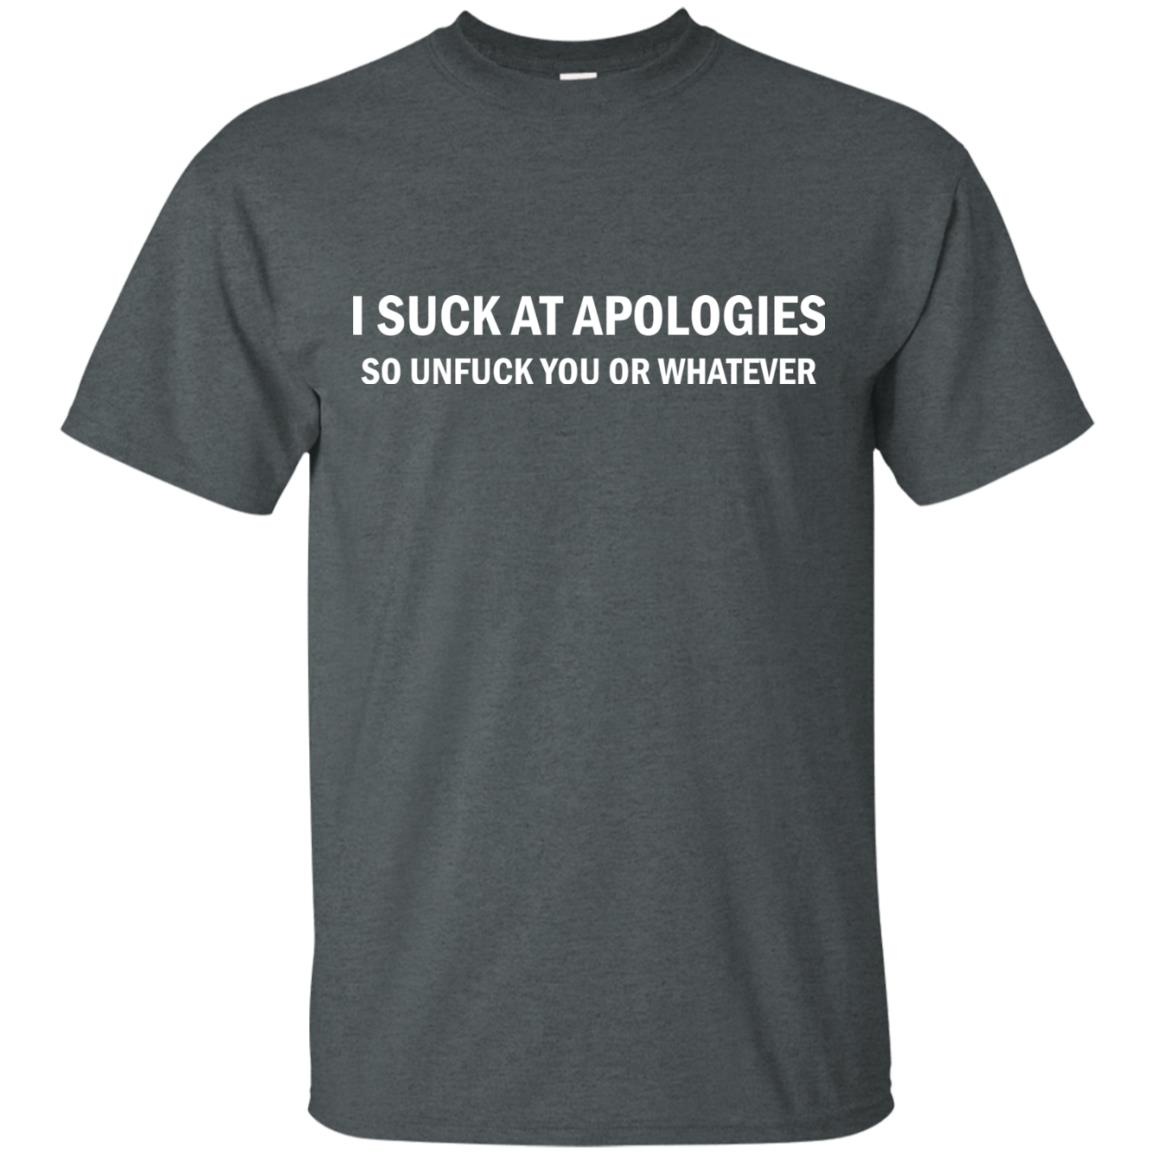 image 1829 - I suck at apologies so unfuck you or whatever shirt